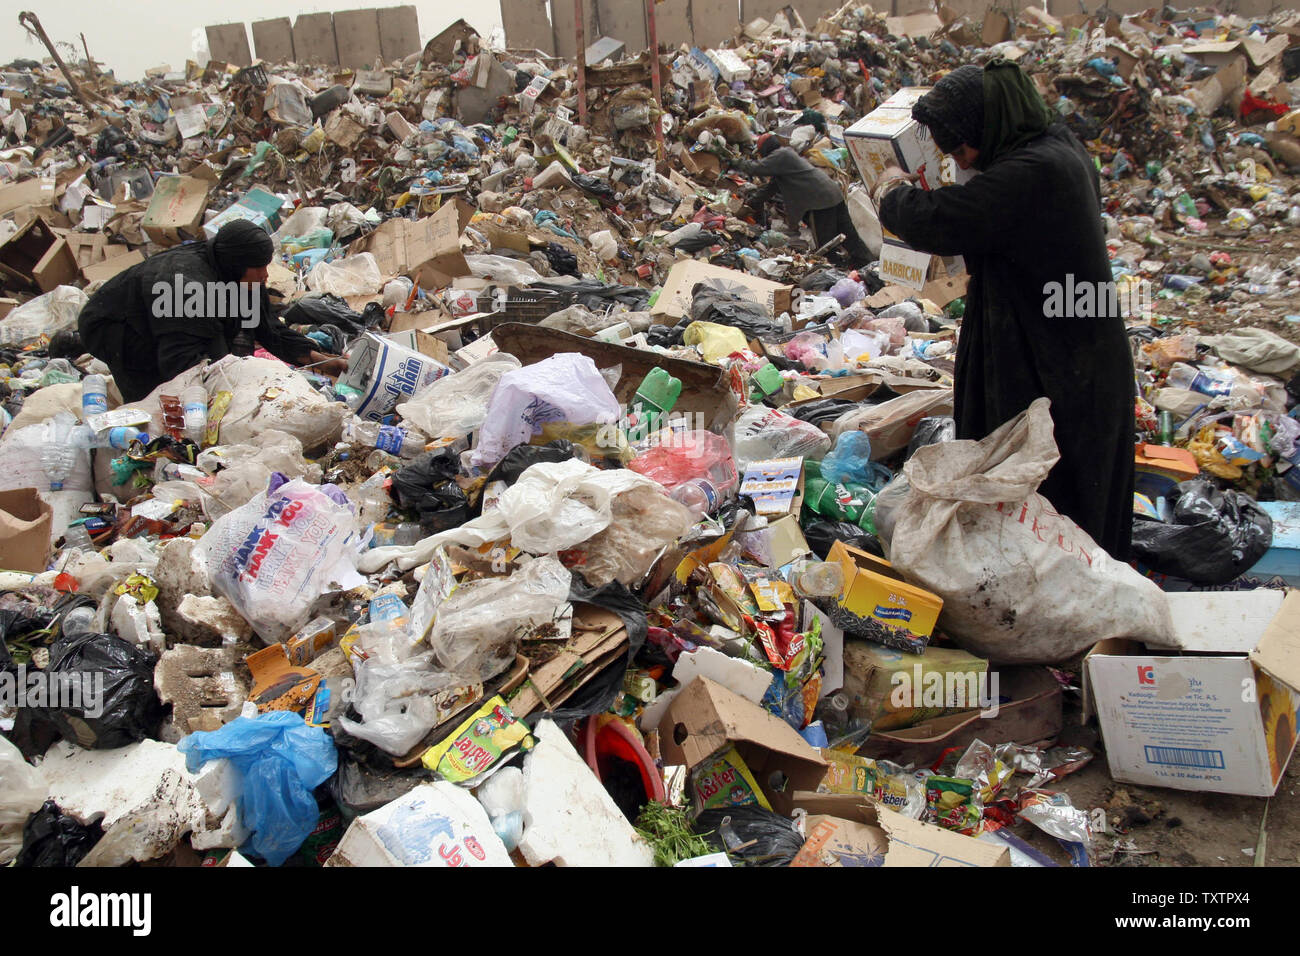 Iraqis rummage through piles of garbage at a dump in Baghdad on March 28, 2009. The worsening economic situation in Iraq and the lack of jobs has forced many Iraqi families to spend their days looking for metal and other recyclable items to resell. (UPI Photo/Ali Jasim) - Stock Image